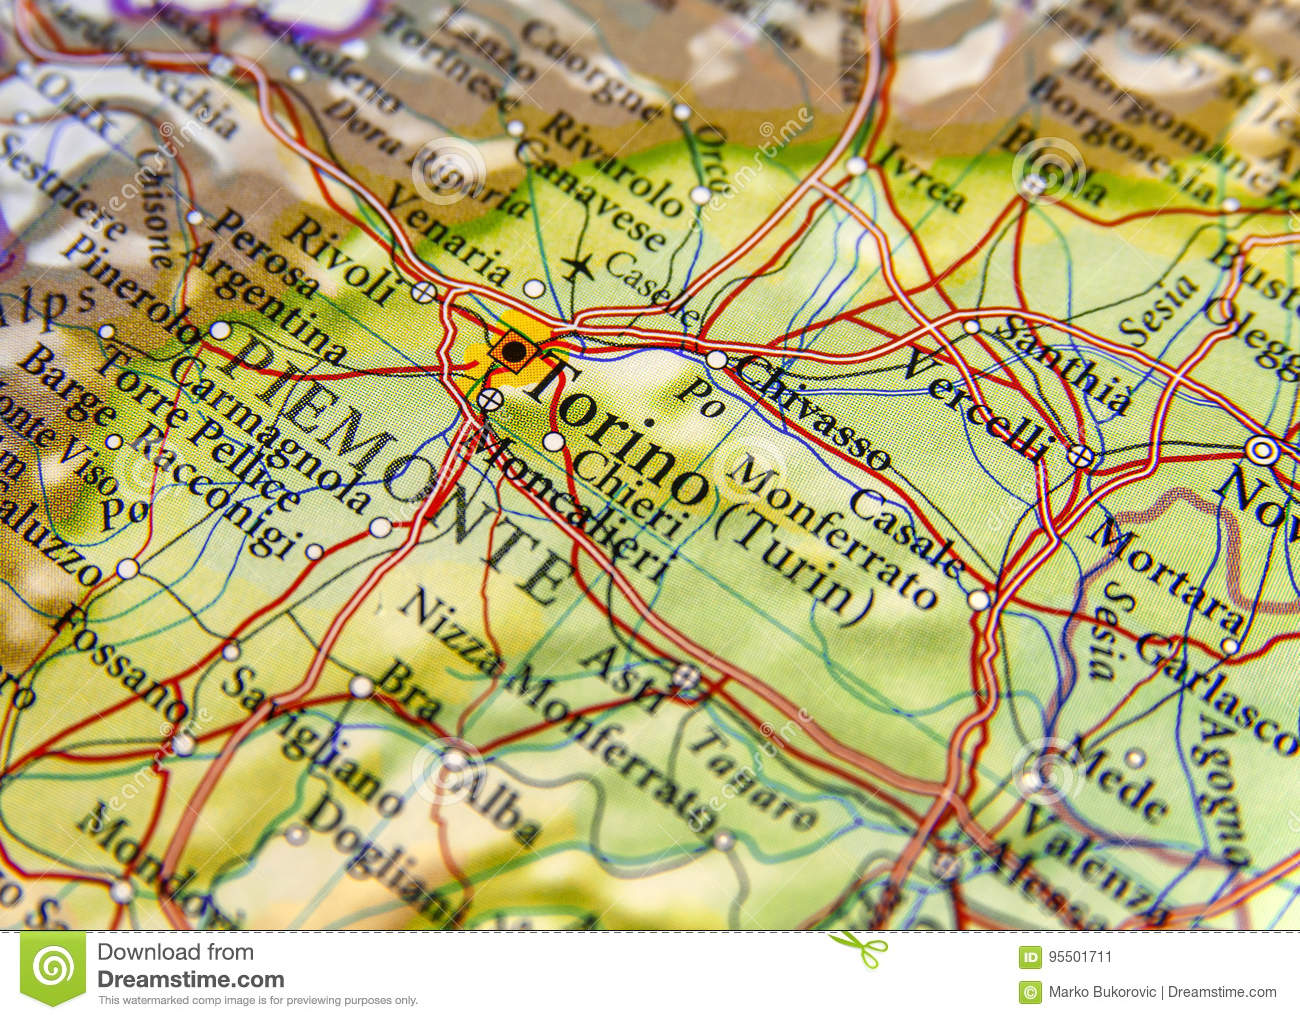 Map Of Italy Torino.Geographic Map Of European Country Italy With Torino City Stock